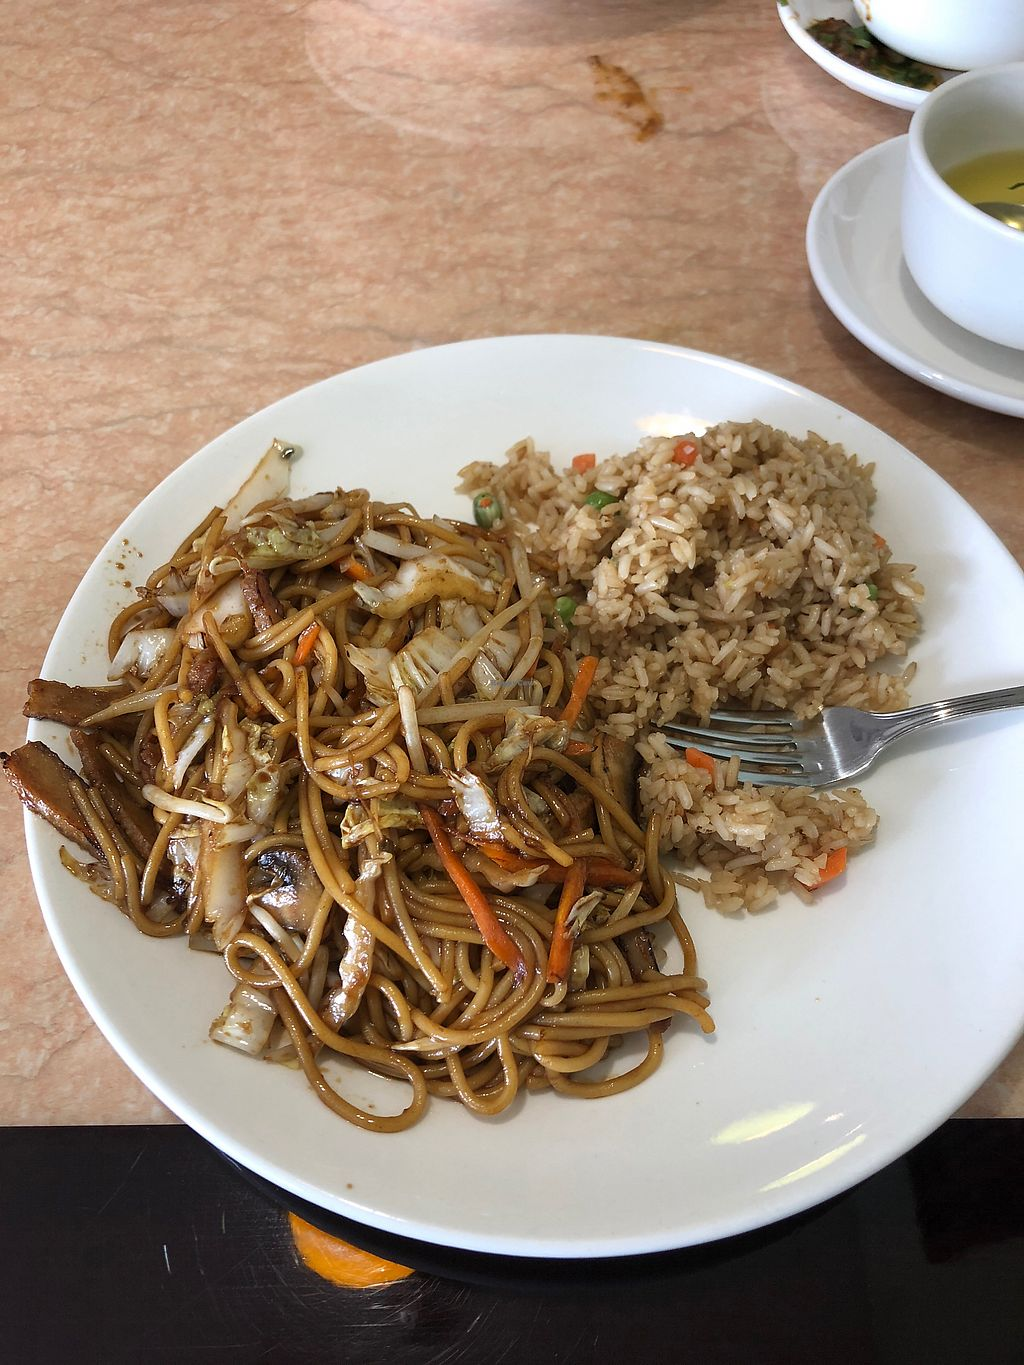 """Photo of Ma Ma Wok  by <a href=""""/members/profile/AshleyMullins"""">AshleyMullins</a> <br/>Chicken Lo Mein combo <br/> April 8, 2018  - <a href='/contact/abuse/image/98709/382532'>Report</a>"""